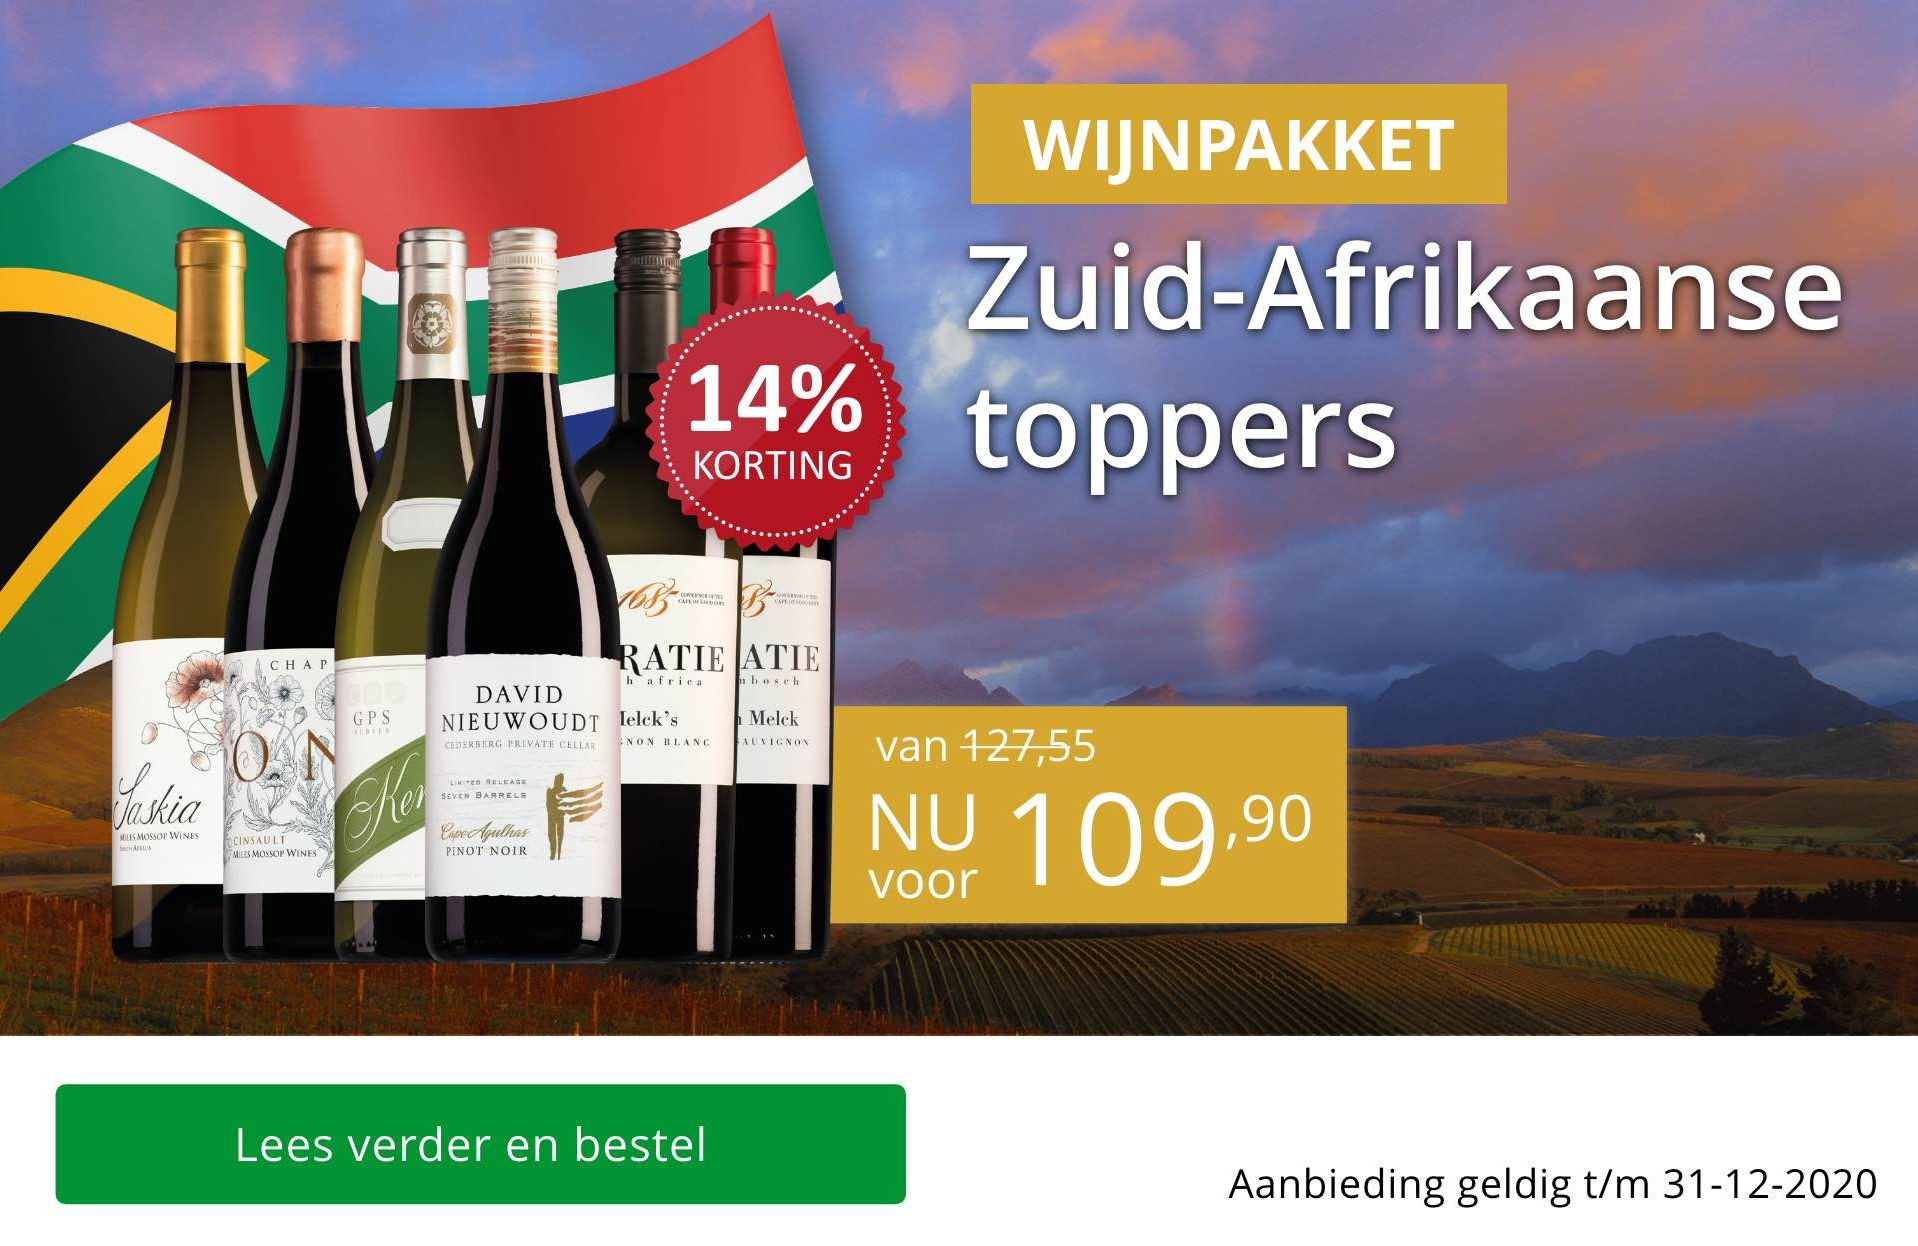 Zuid-Afrikaanse toppers